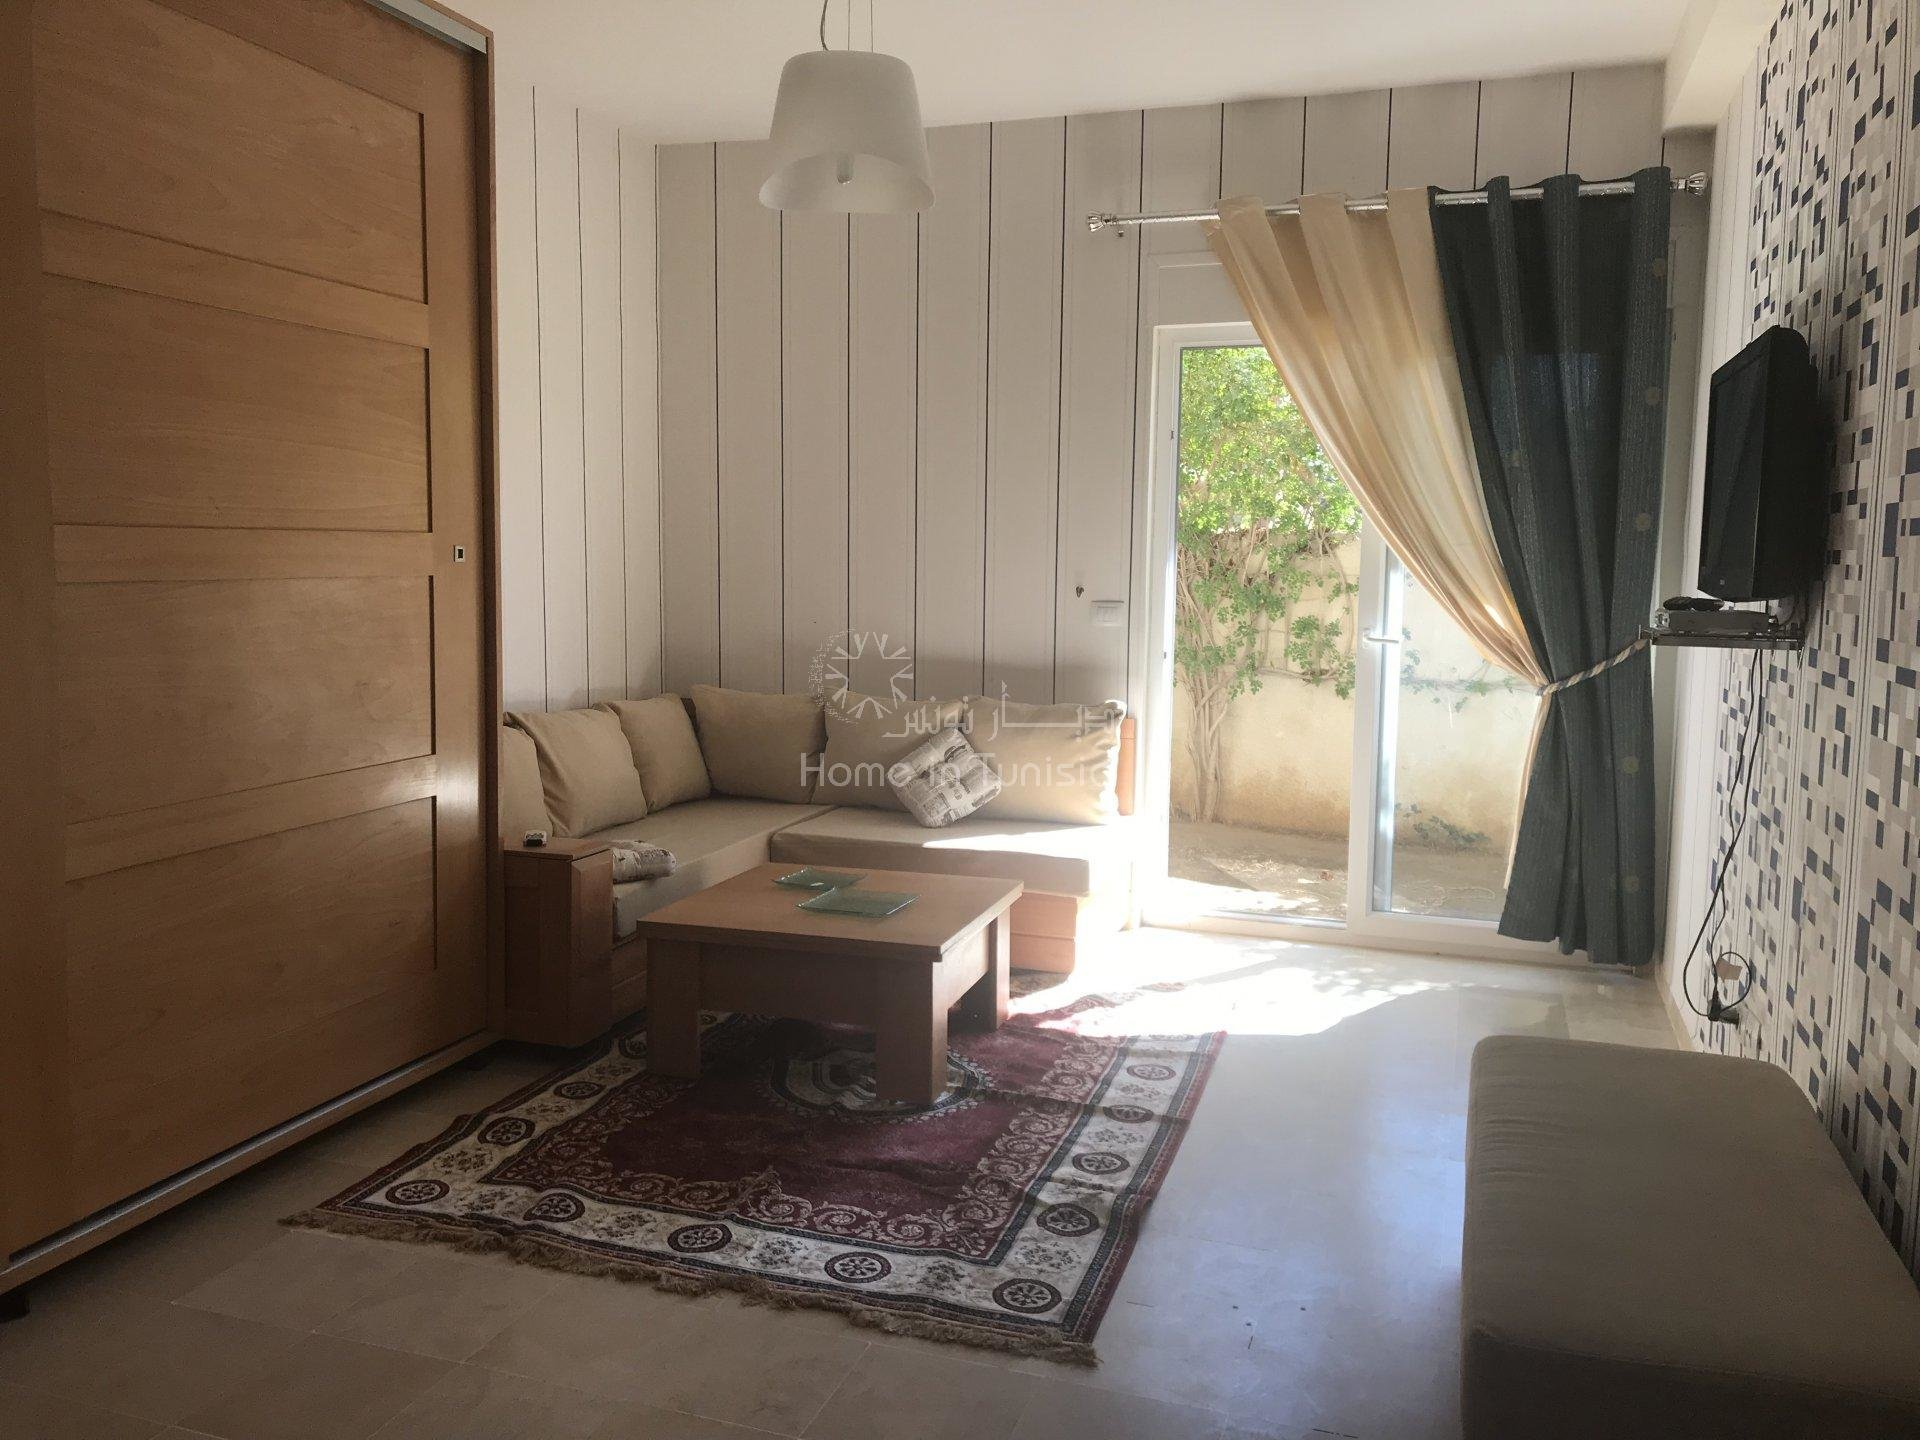 Rental Studio - Chatt Meriem - Tunisia